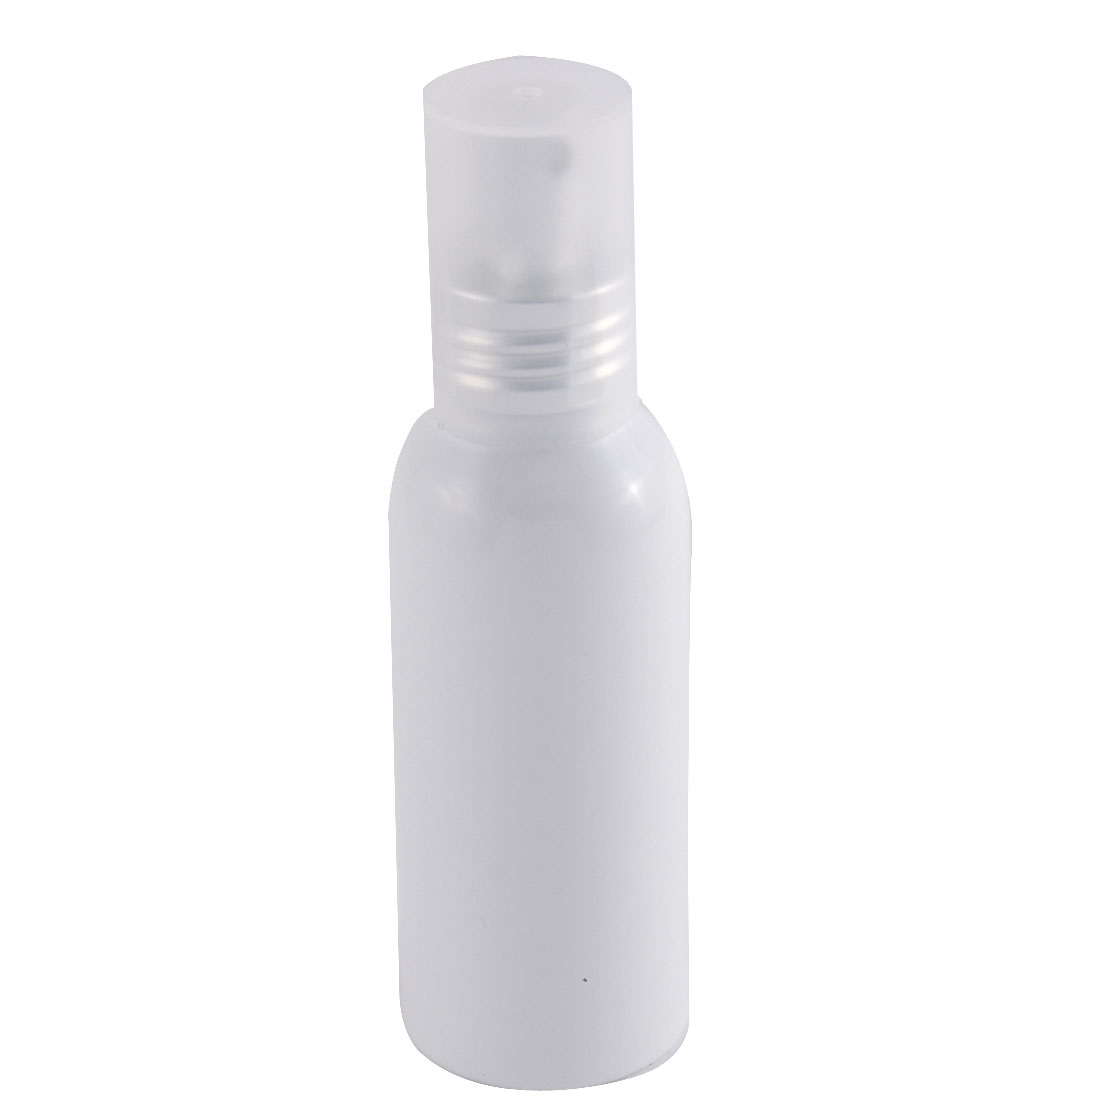 Travel Aluminum Cosmetic Emulsion Press Pump Fine Mist Spray Bottle White 100ml